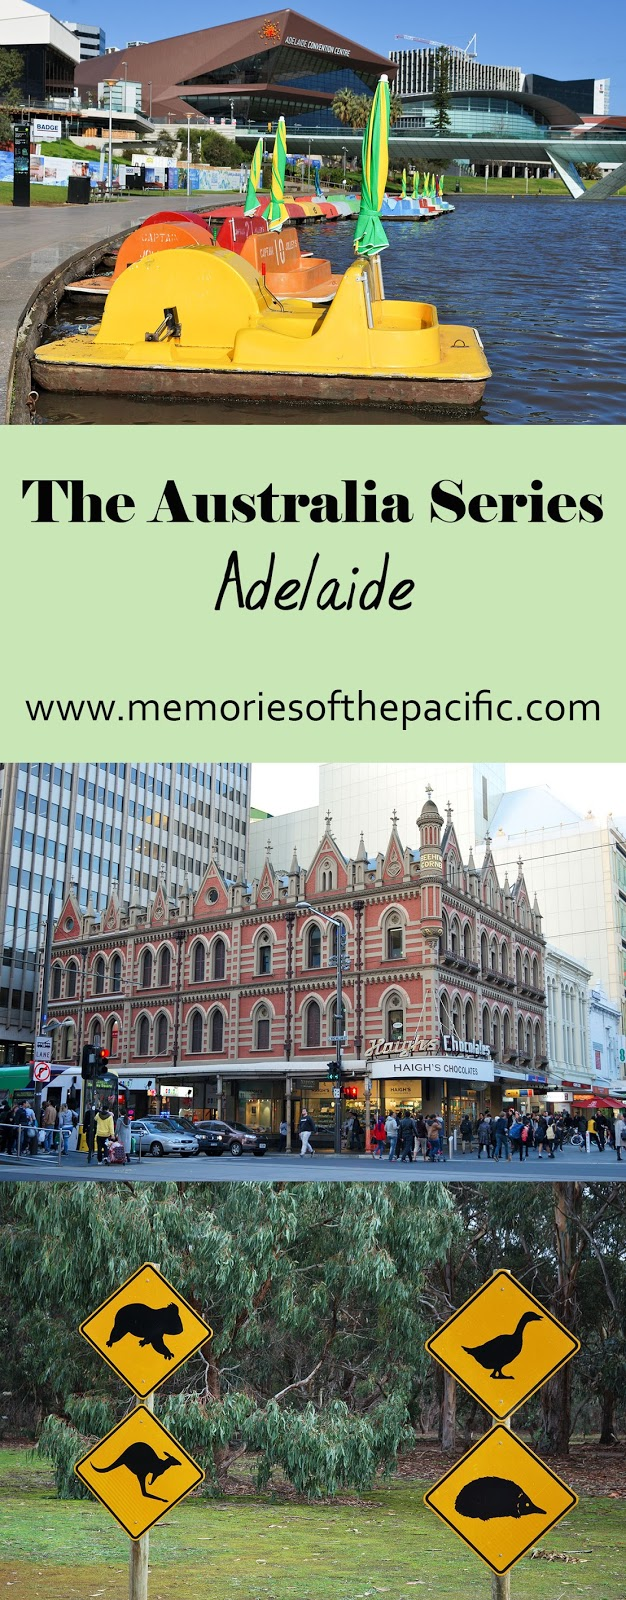 adelaide australia travel guide